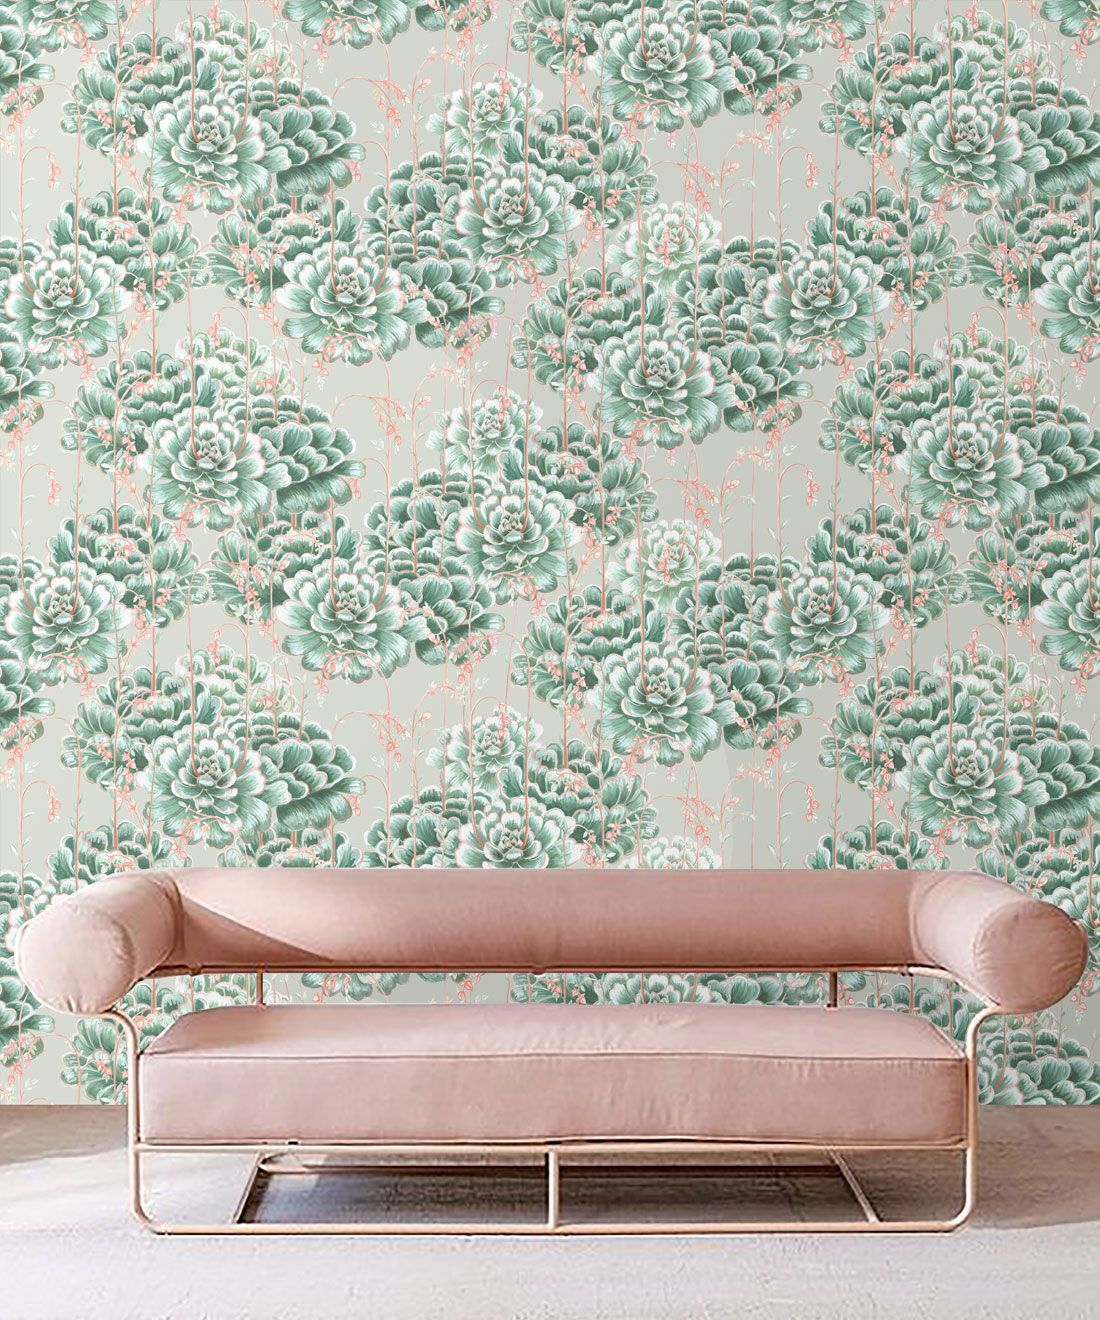 Succulents Wallpaper Green Beige • Cactus Wallpaper • Desert Wallpaper insitu on grey background behind sofa with pink cushions